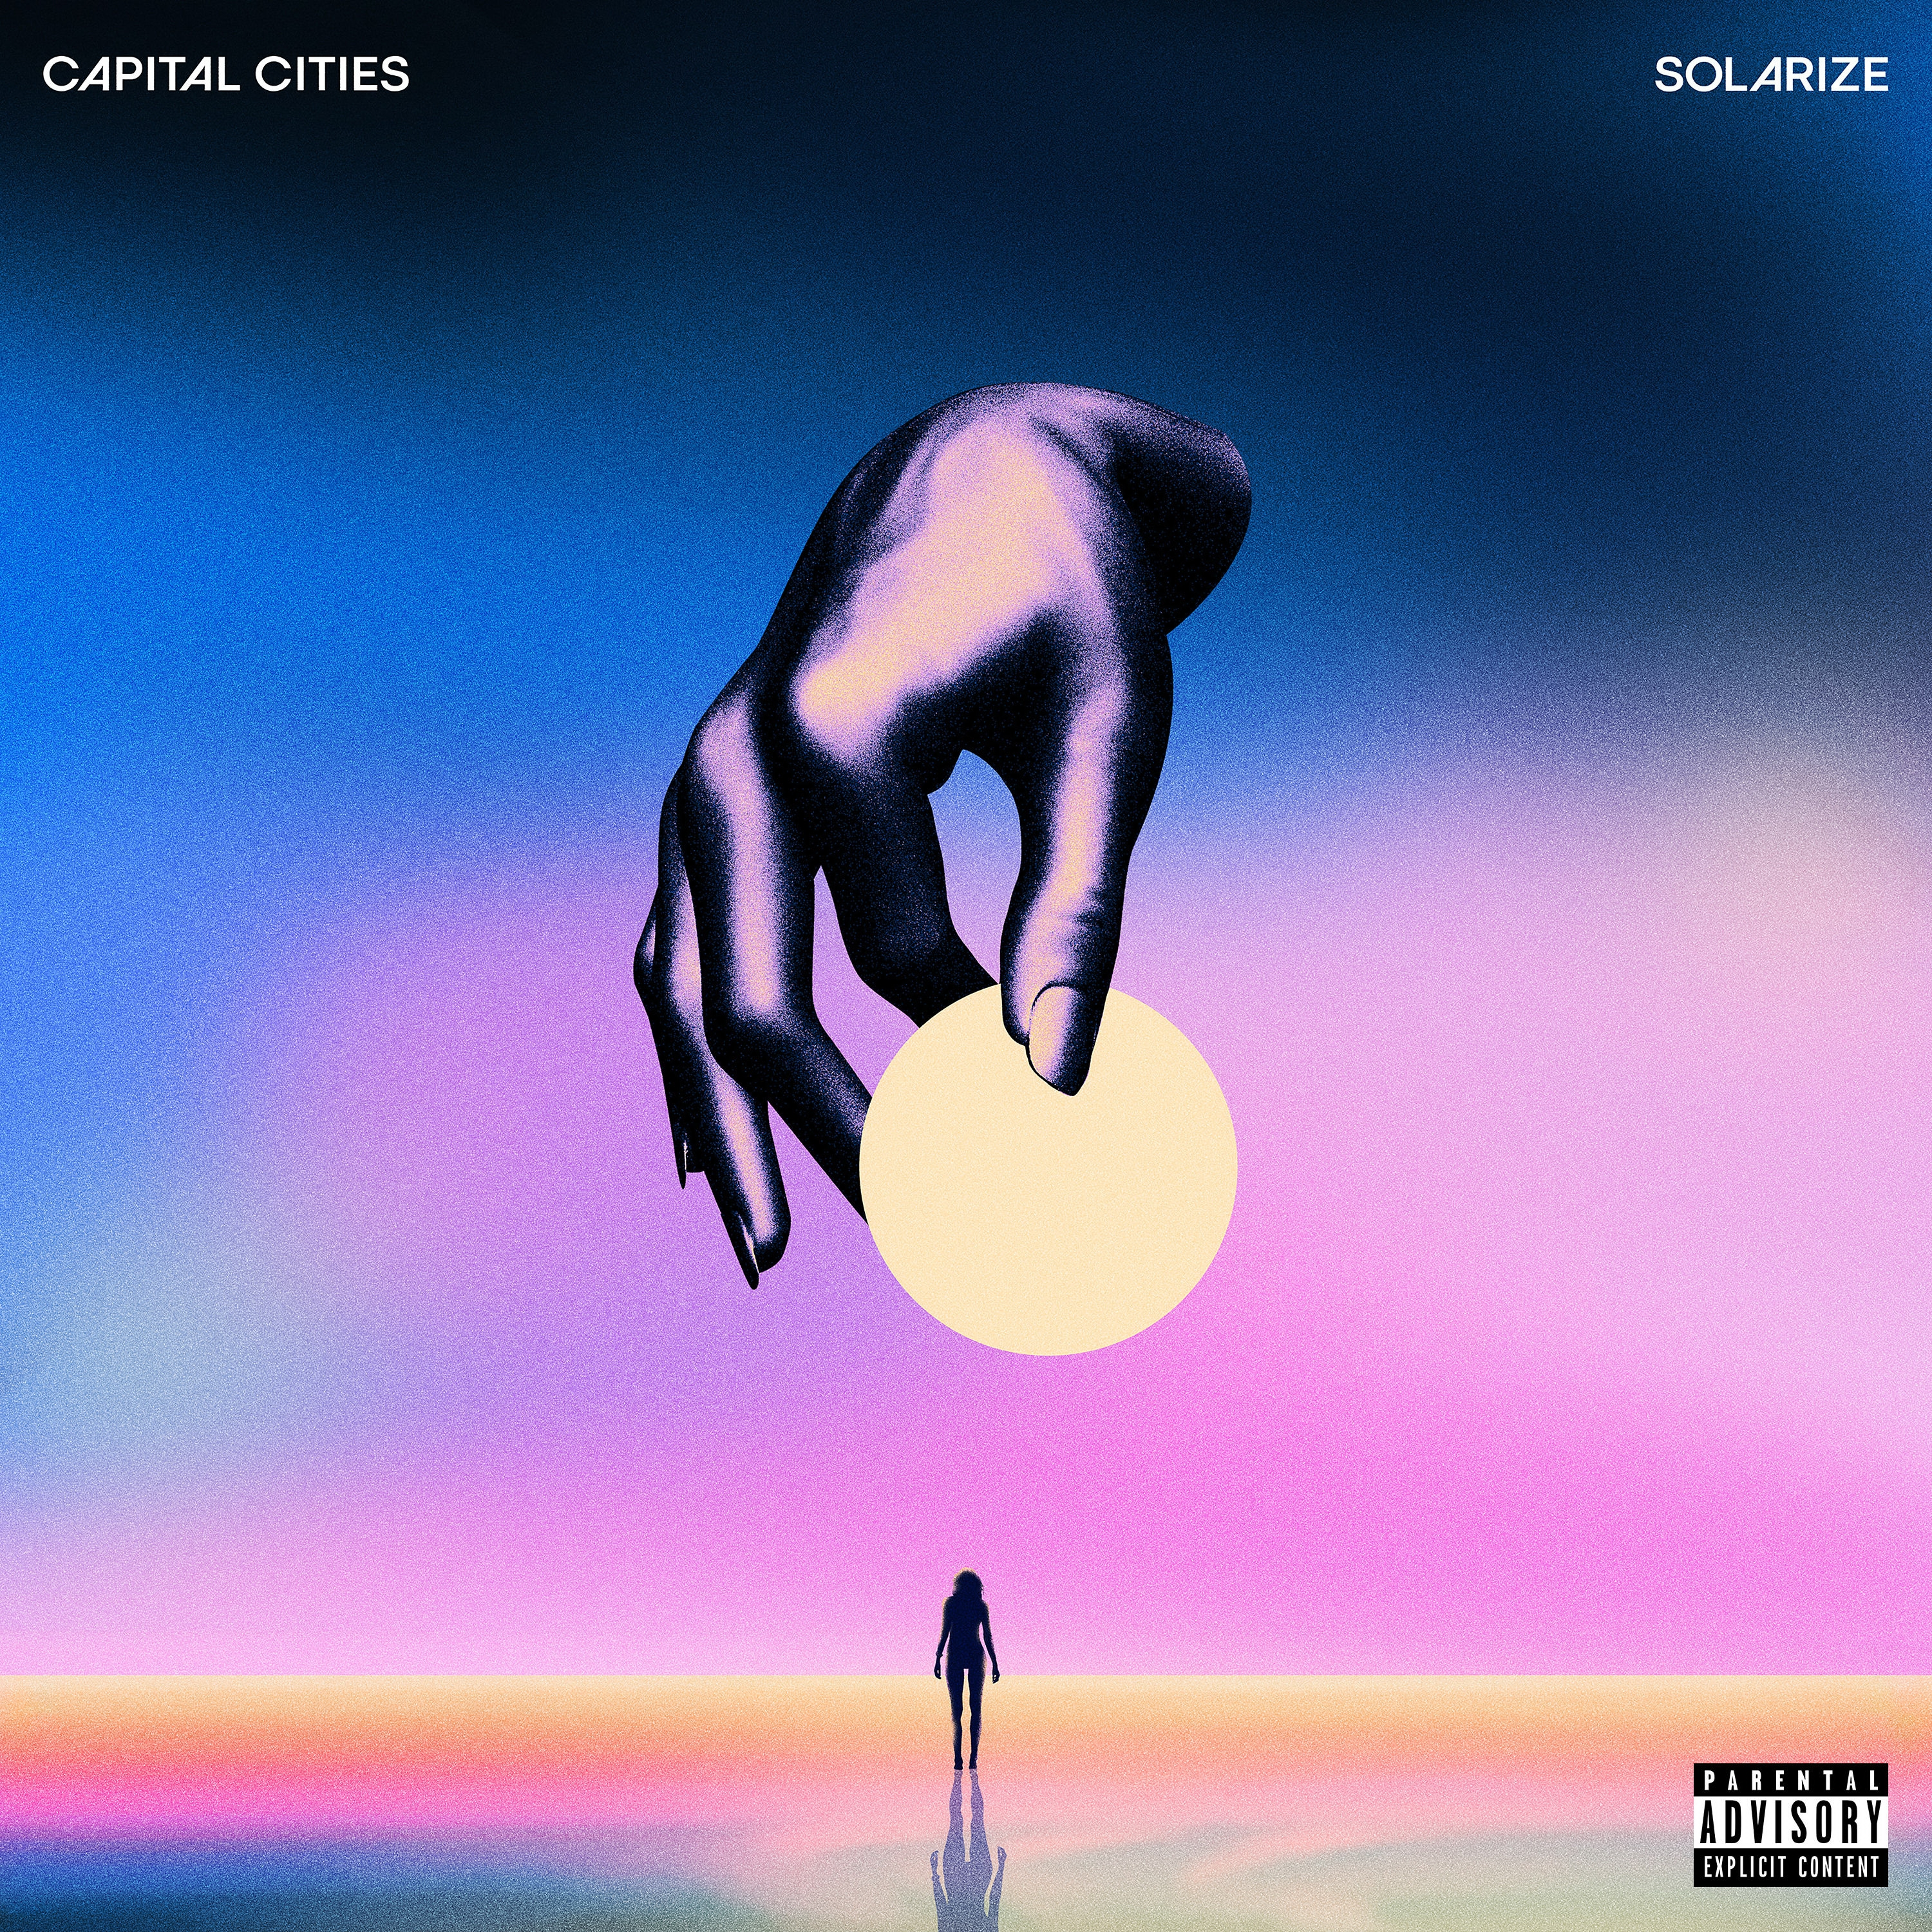 Capital Cities — Solarize [Capitol Records][00602567781110](2018)